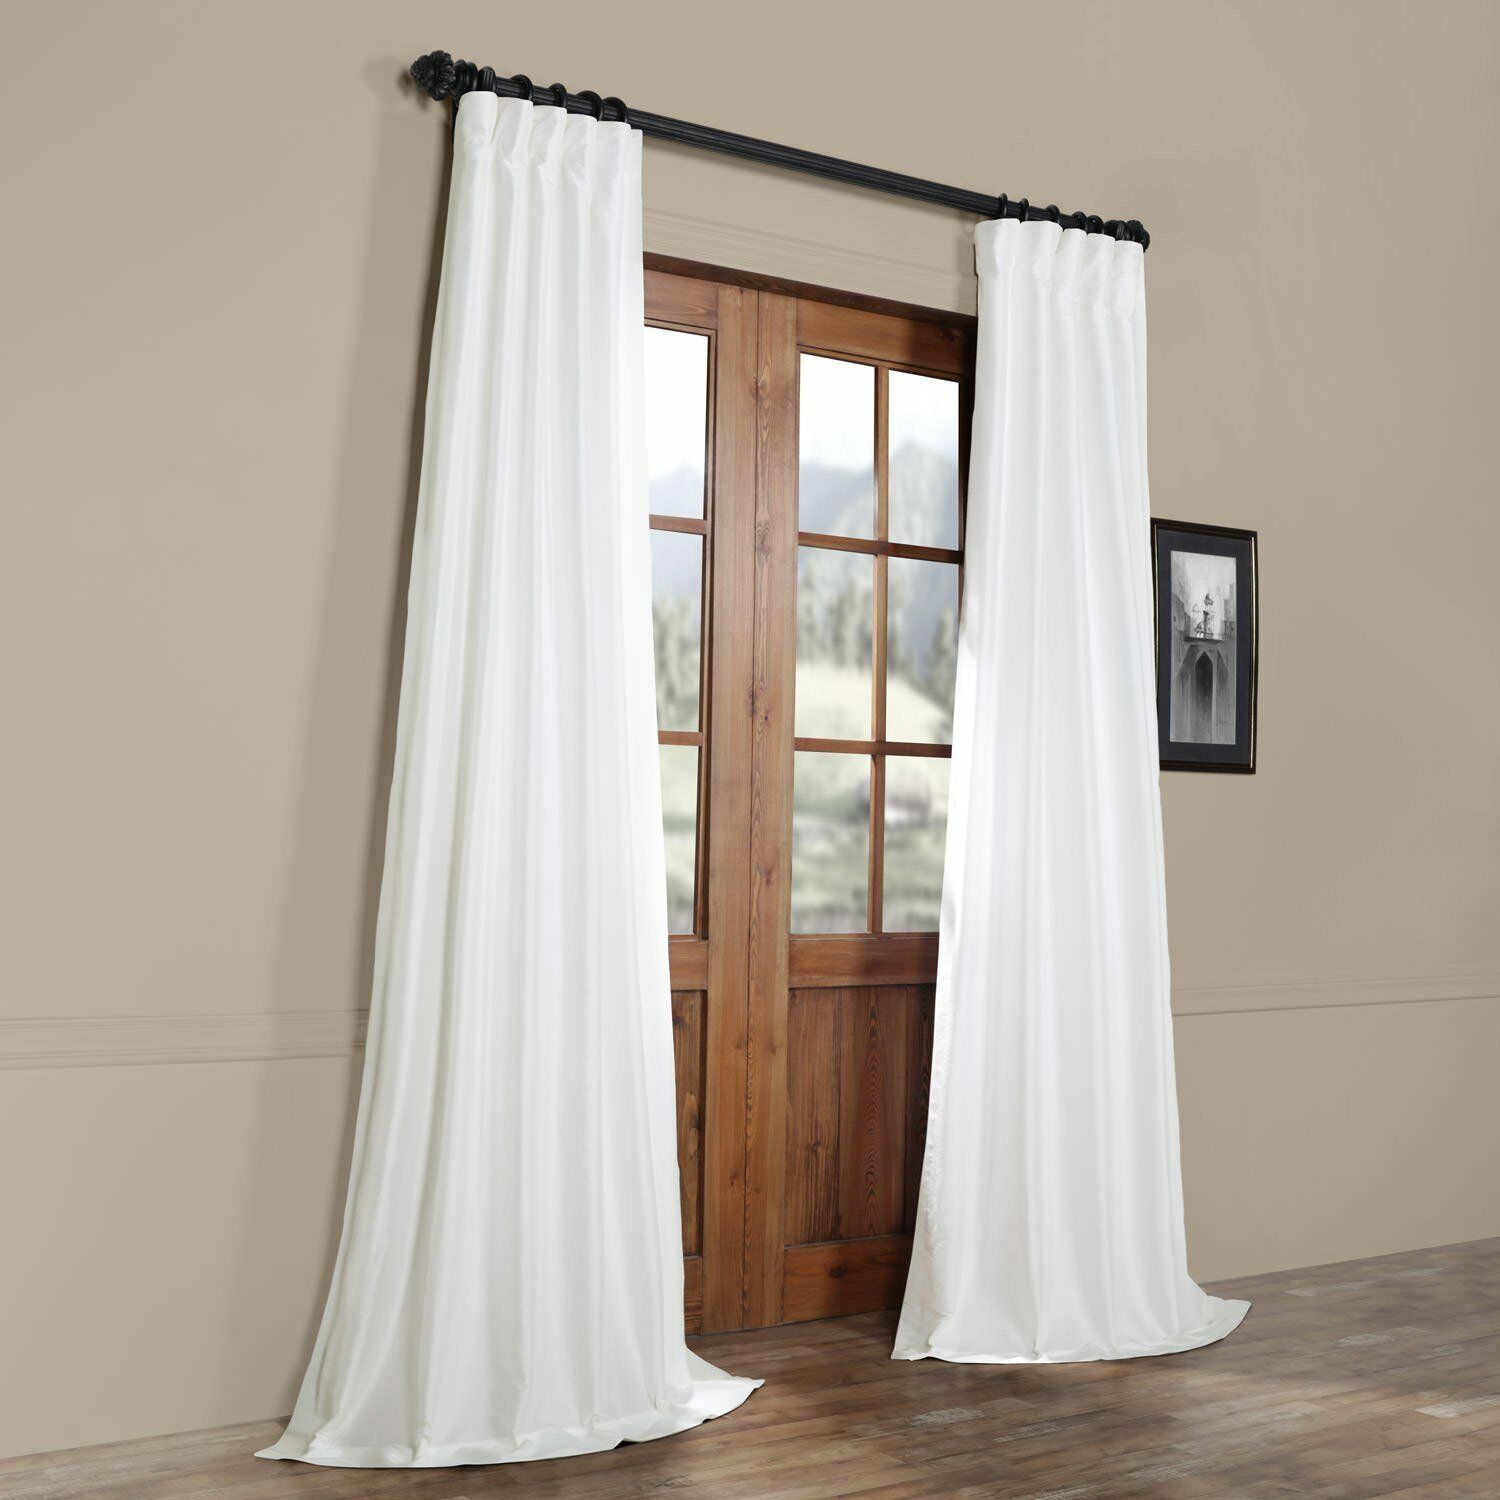 Half Price Drapes White Faux Silk Taffeta Single Panel Curtain, 50 X 108 With Solid Faux Silk Taffeta Graphite Single Curtain Panels (View 18 of 30)